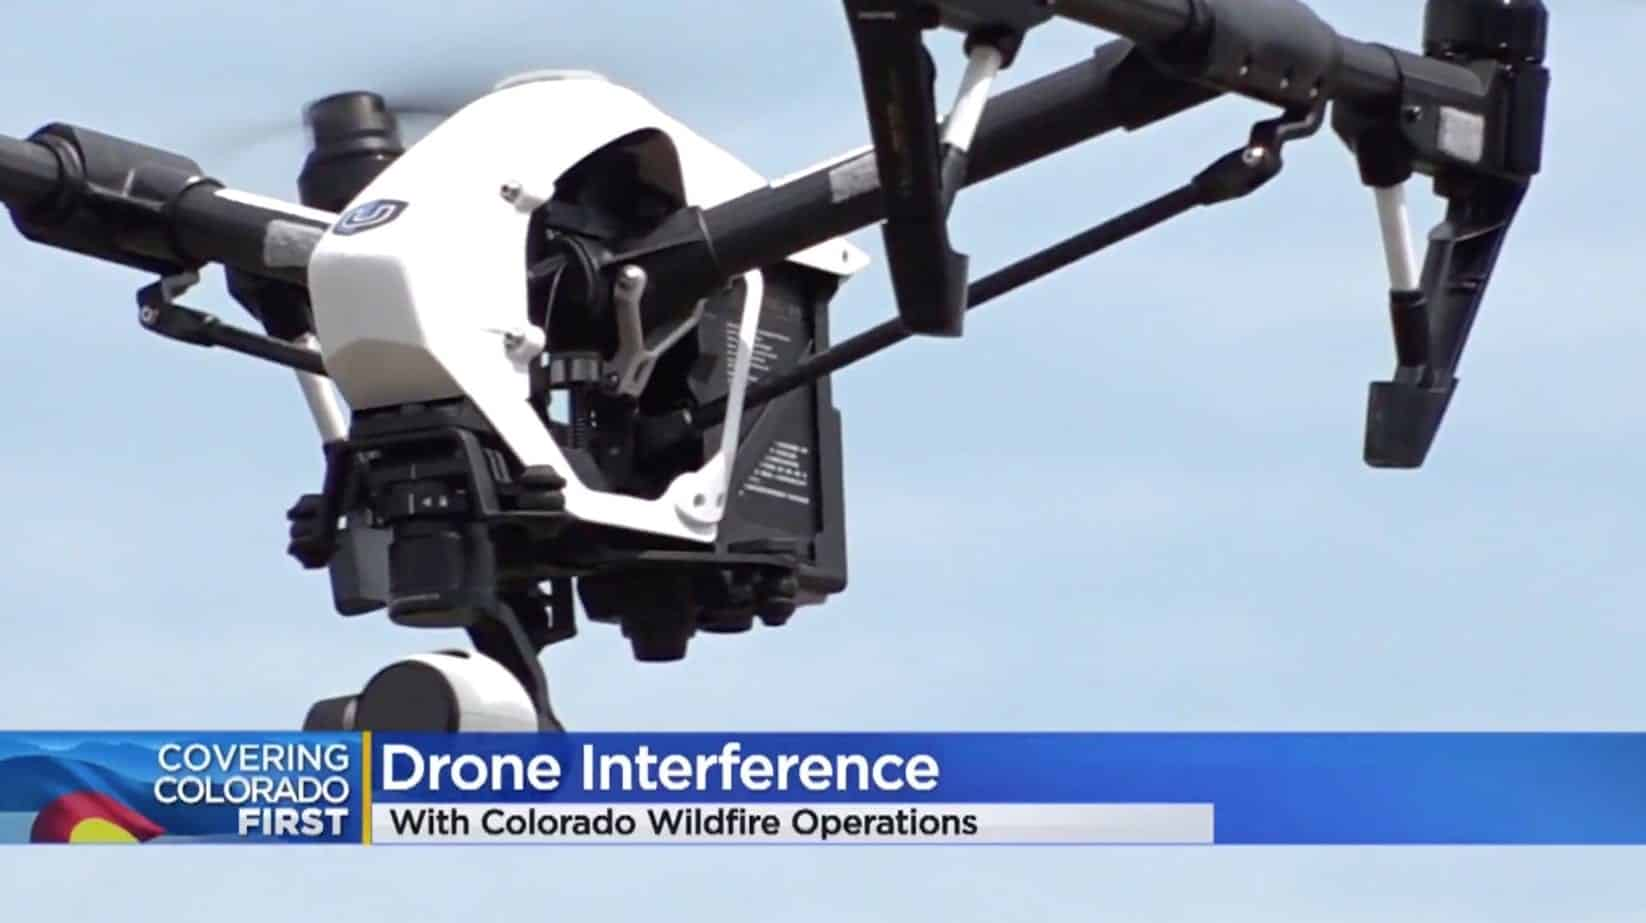 Don't interfere with wildland fire operations when flying your drone!